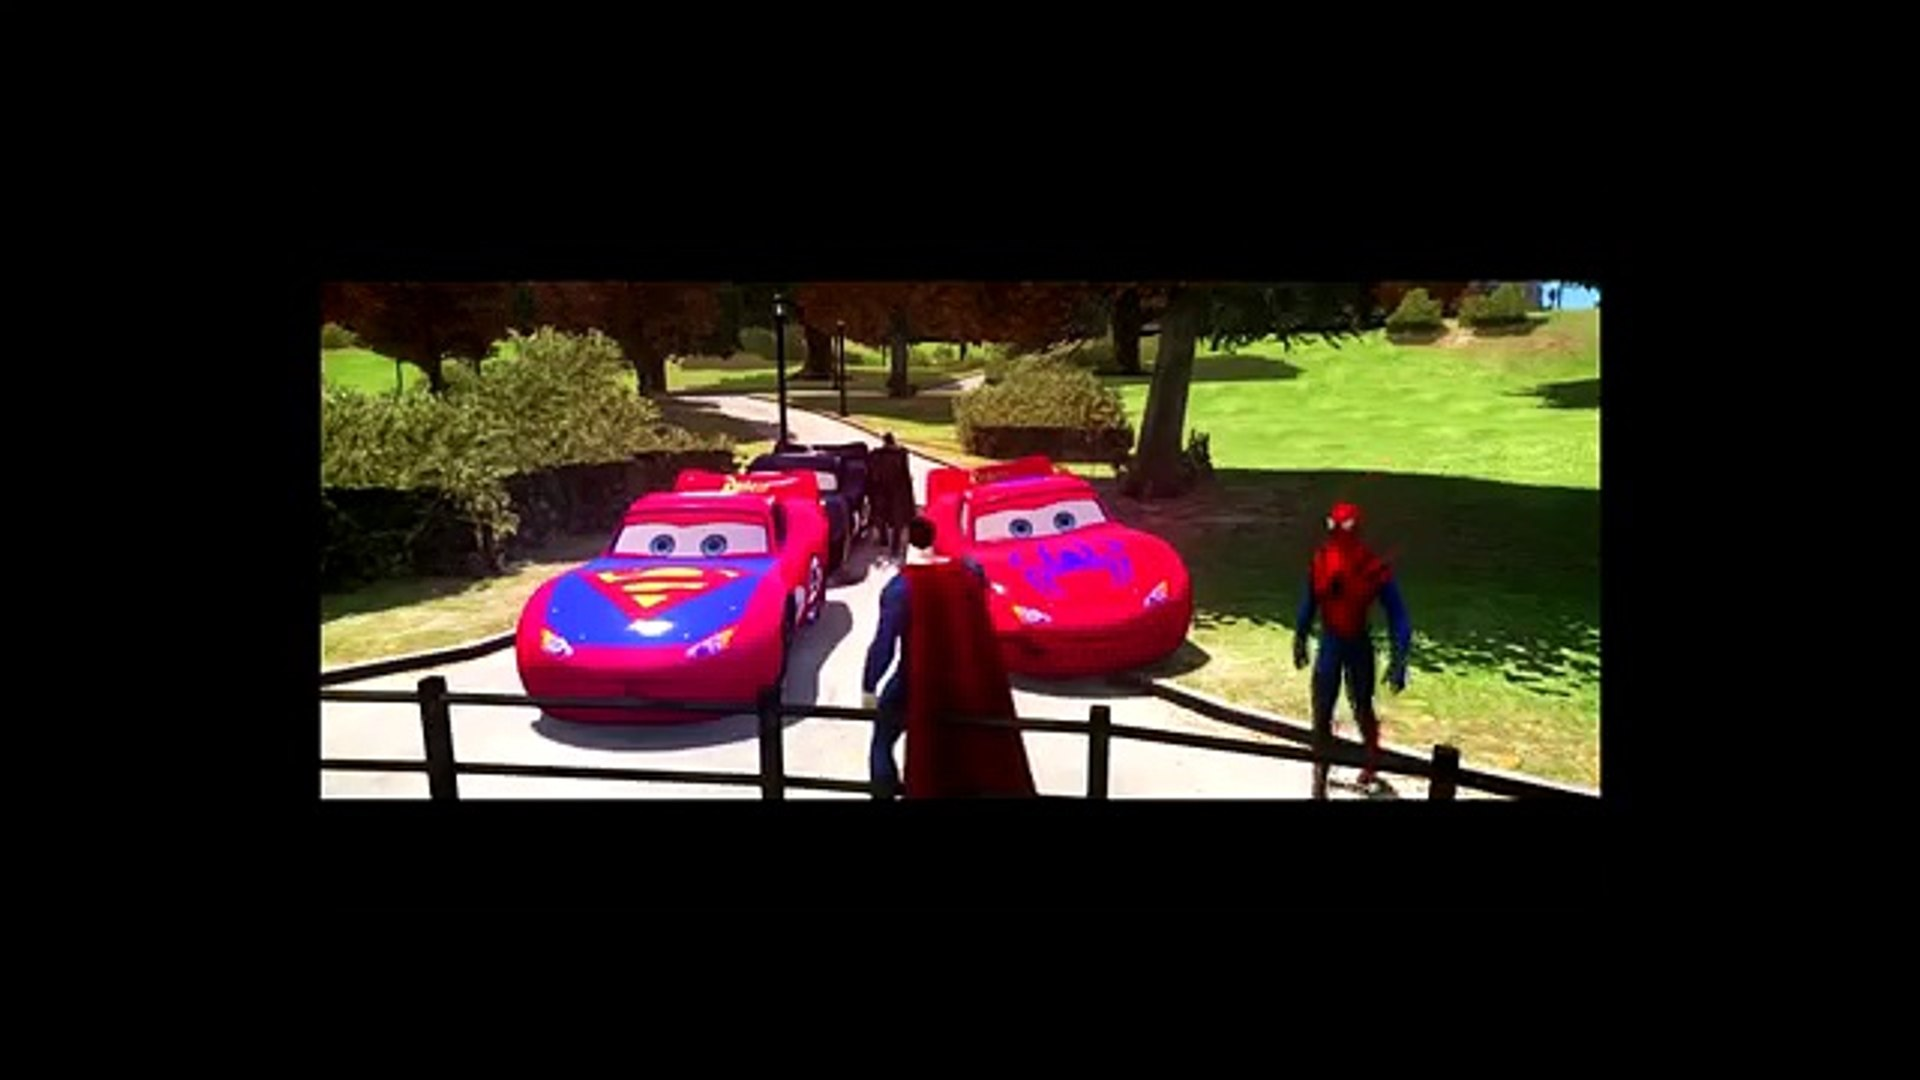 Batman, Superman & Spiderman Custom Cars Race Track Lightning Mcqueen Cars Rayo Macuin1